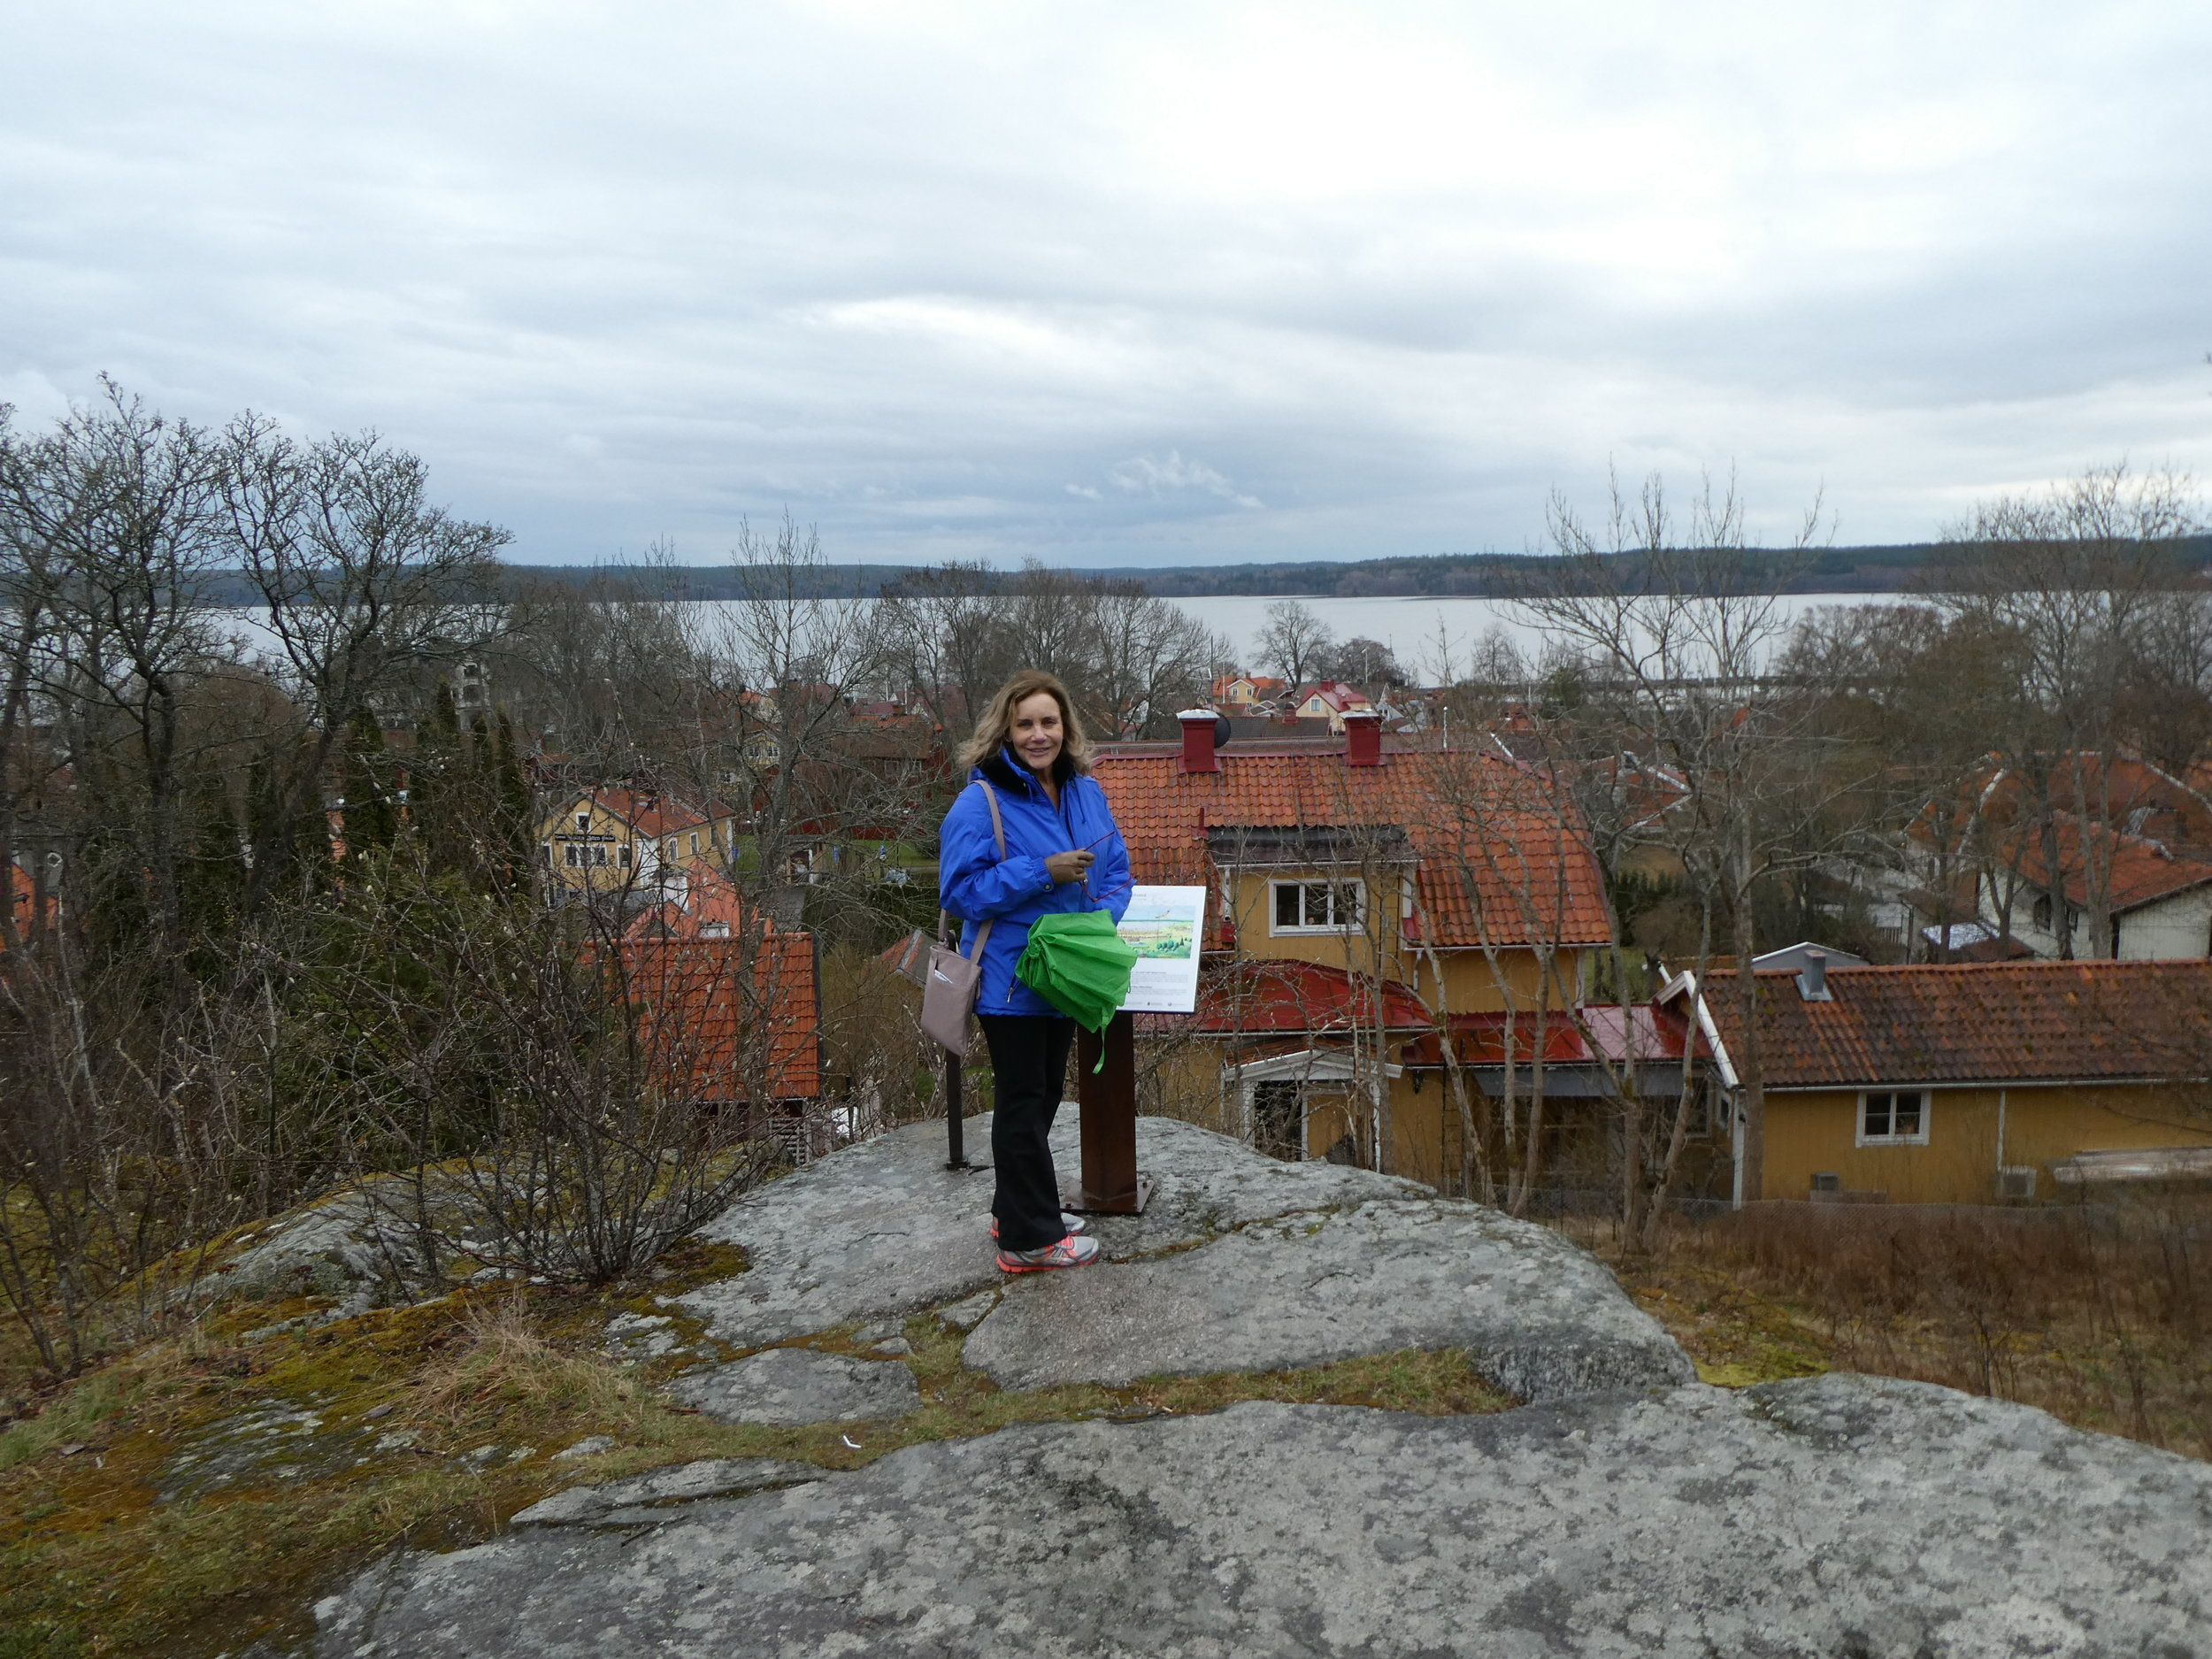 Overlooking the lake from a viewpoint above Sigtuna.